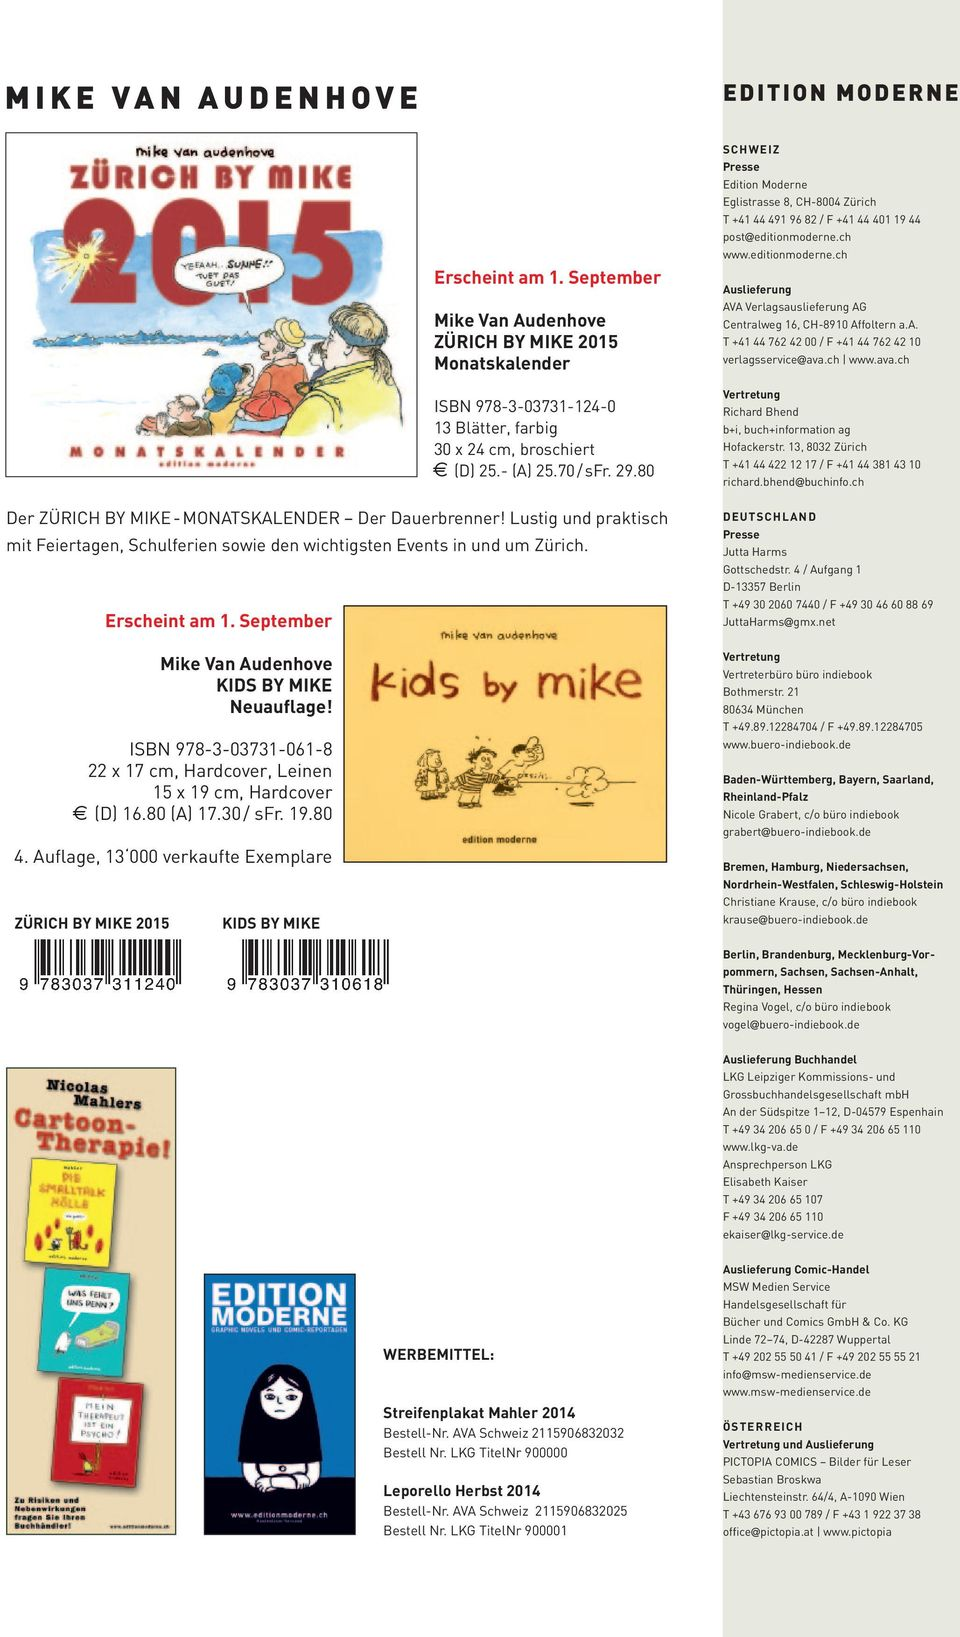 September Mike Van Audenhove KIDS BY MIKE Neuauflage! ISBN 978-3-03731-061-8 22 x 17 cm, Hardcover, Leinen 15 x 19 cm, Hardcover (D) 16.80 (A) 17.30 / sfr. 19.80 4.